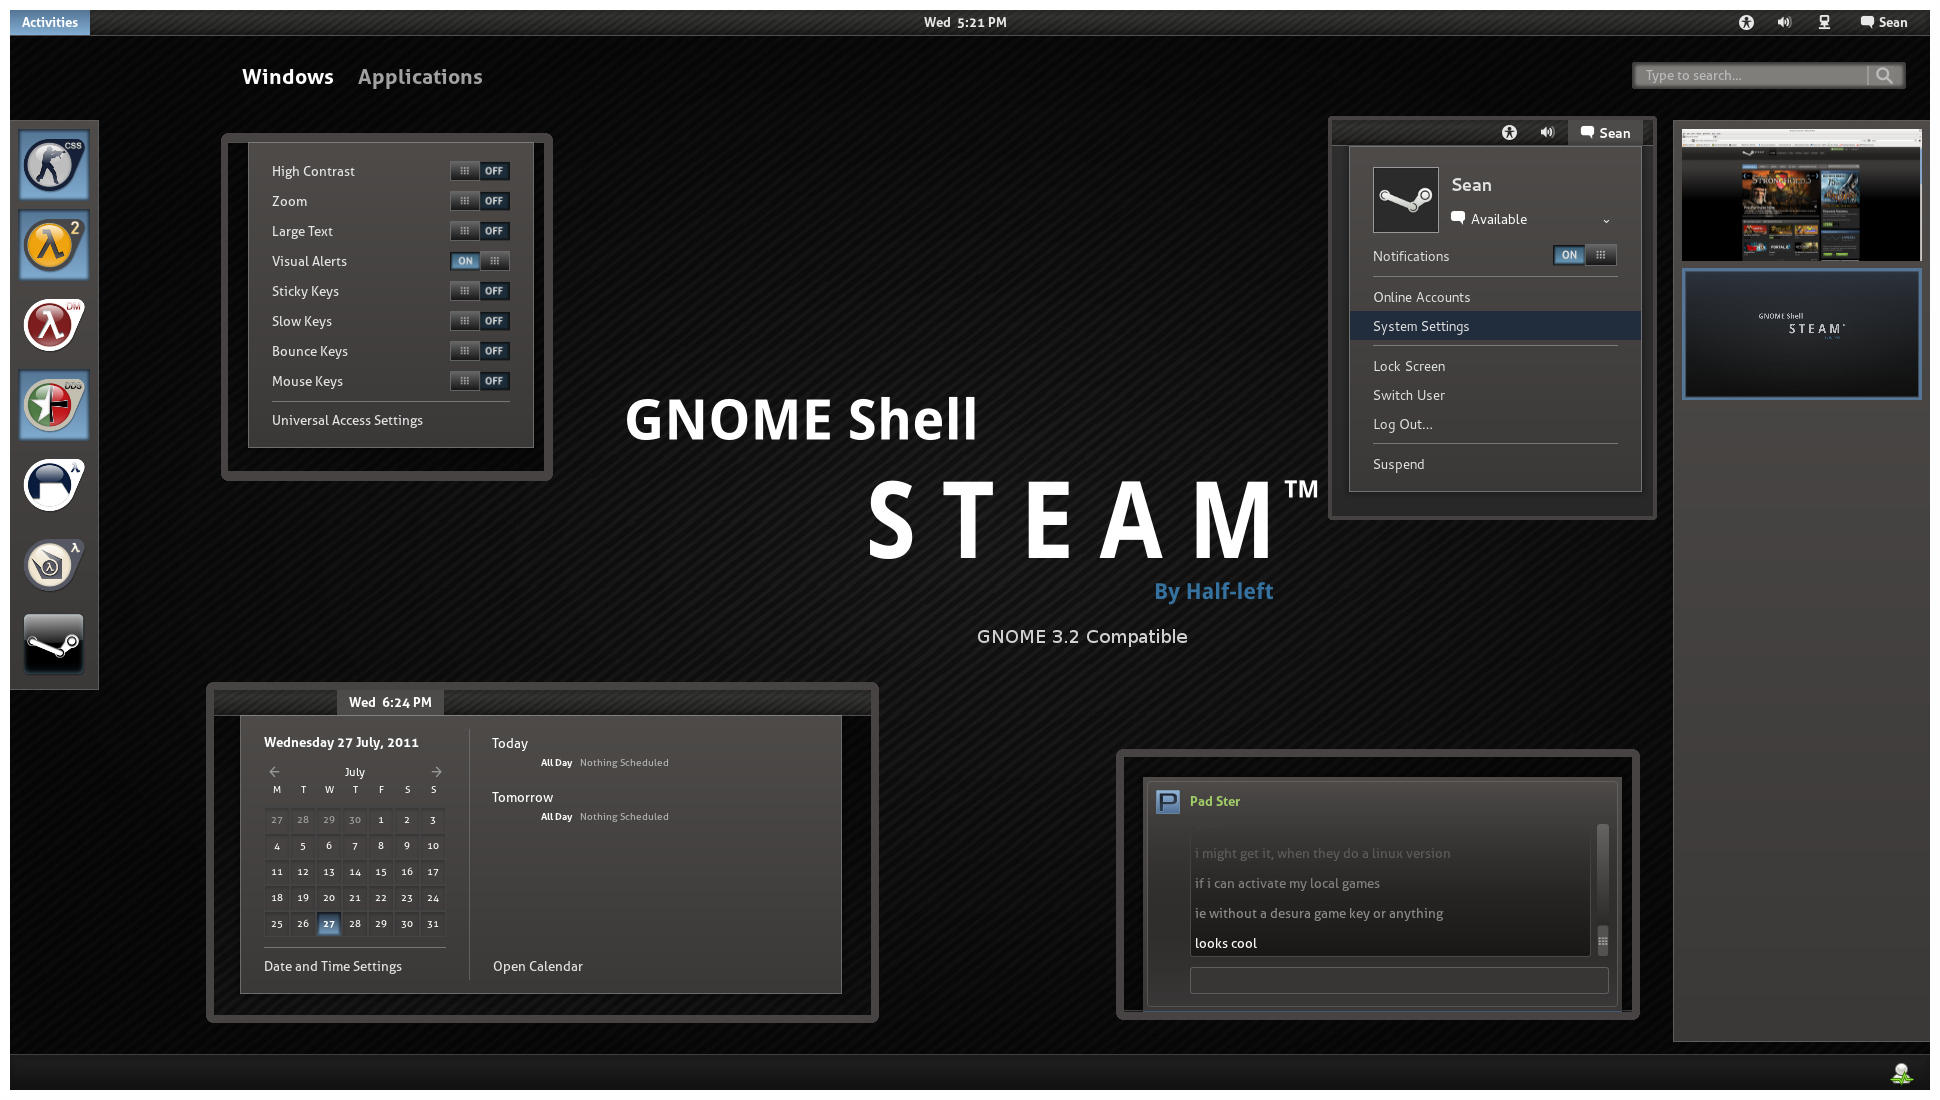 GNOME Shell - Steam by half-left